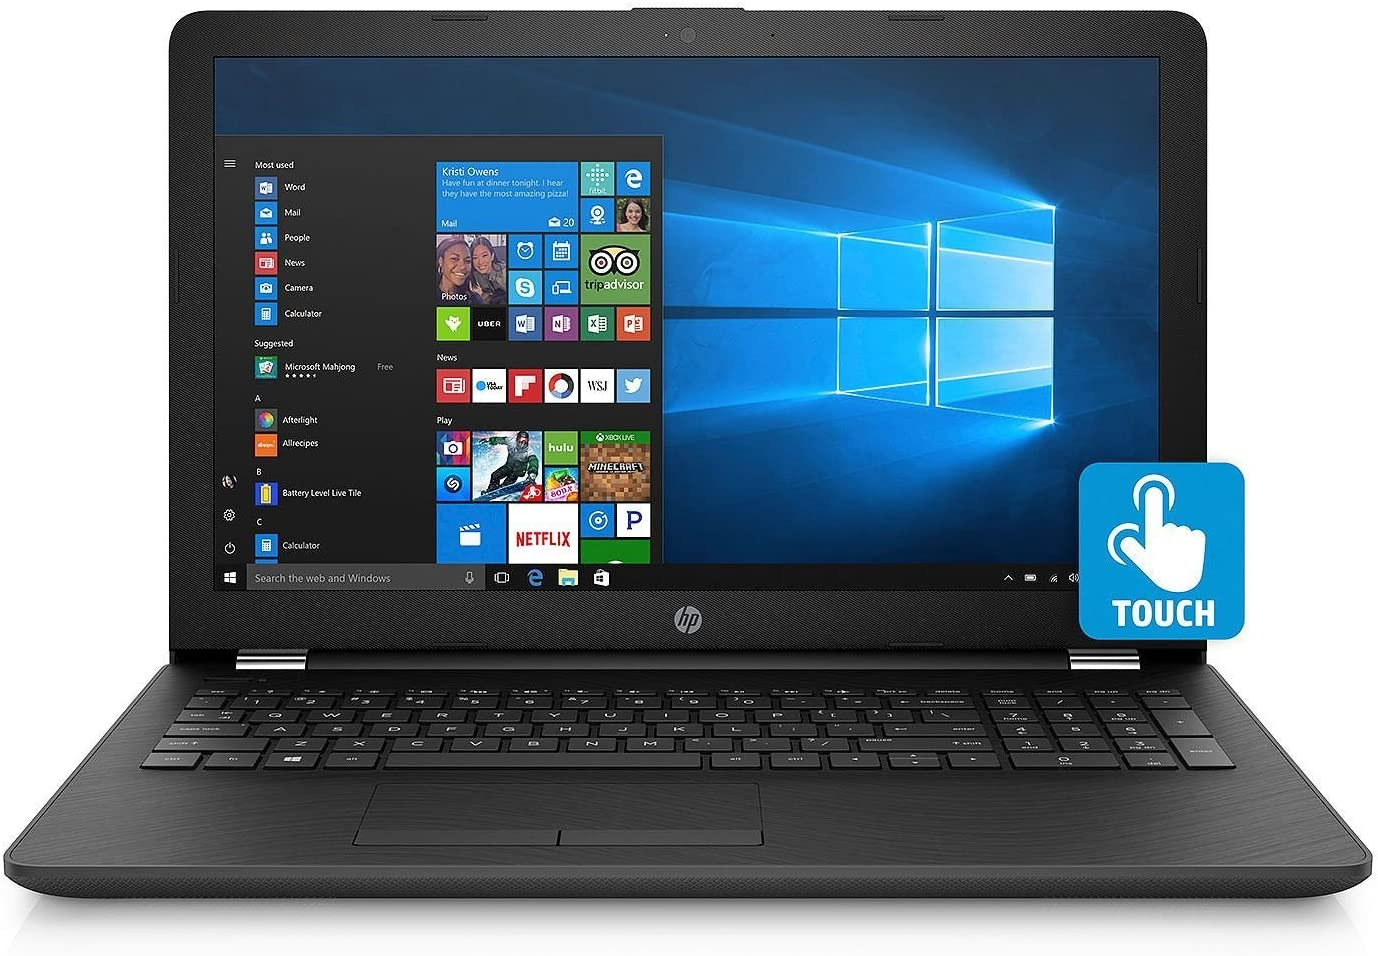 2019 HP 15.6-inch HD Touchscreen Premium Laptop PC, Intel Quad Core i5-8250U Processor, 8GB DDR4 Memory, 128GB SSD, 2TB Hard Drive, Backlit Keyboard, DVD, Bluetooth, Windows 10, Black